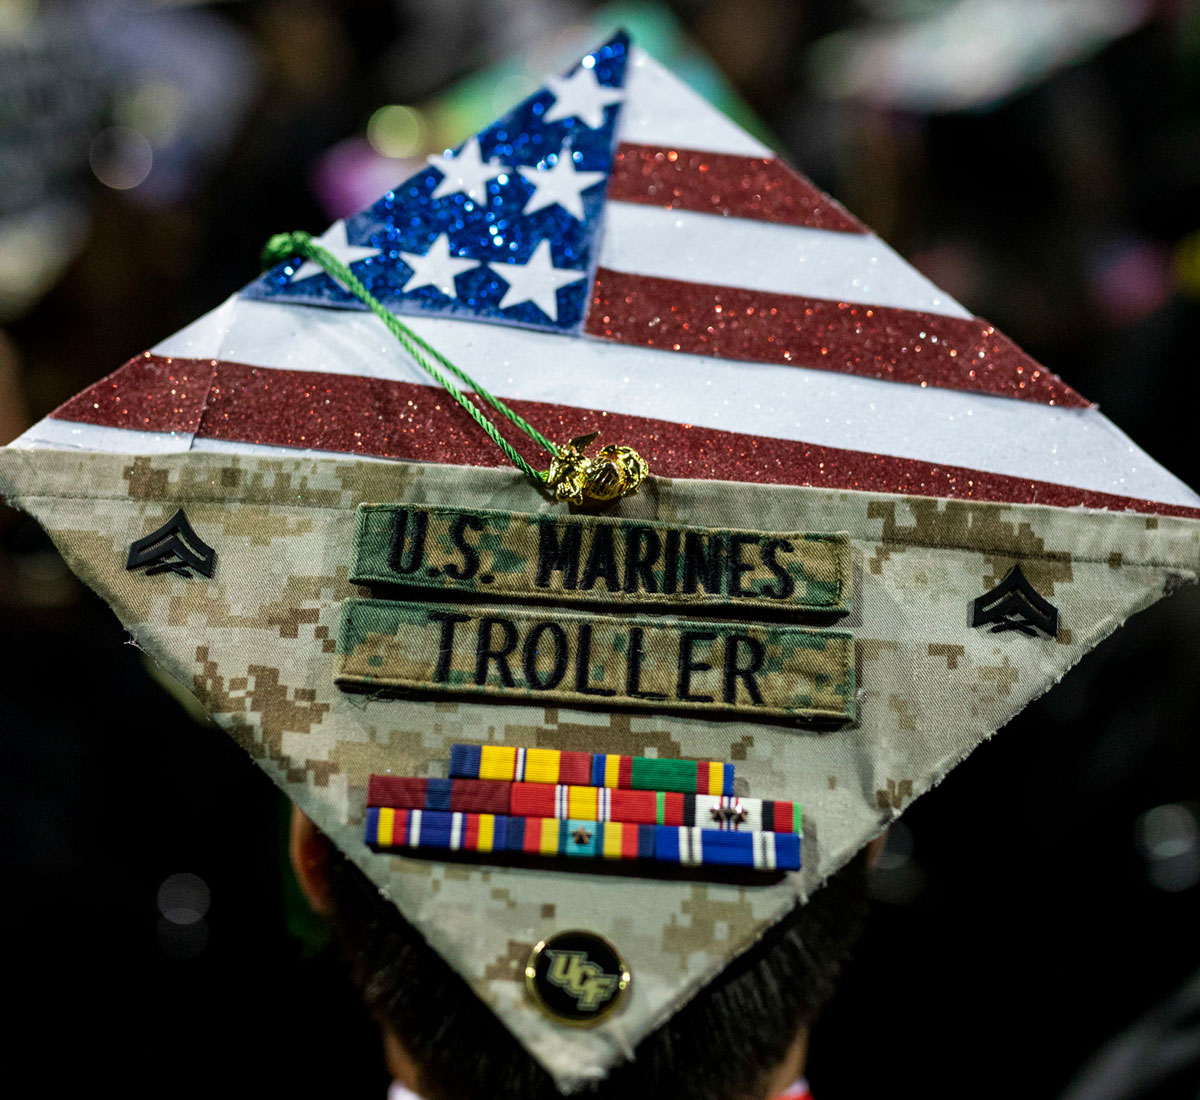 Graduation cap decorated with American flag and U.S Marines service ribbons